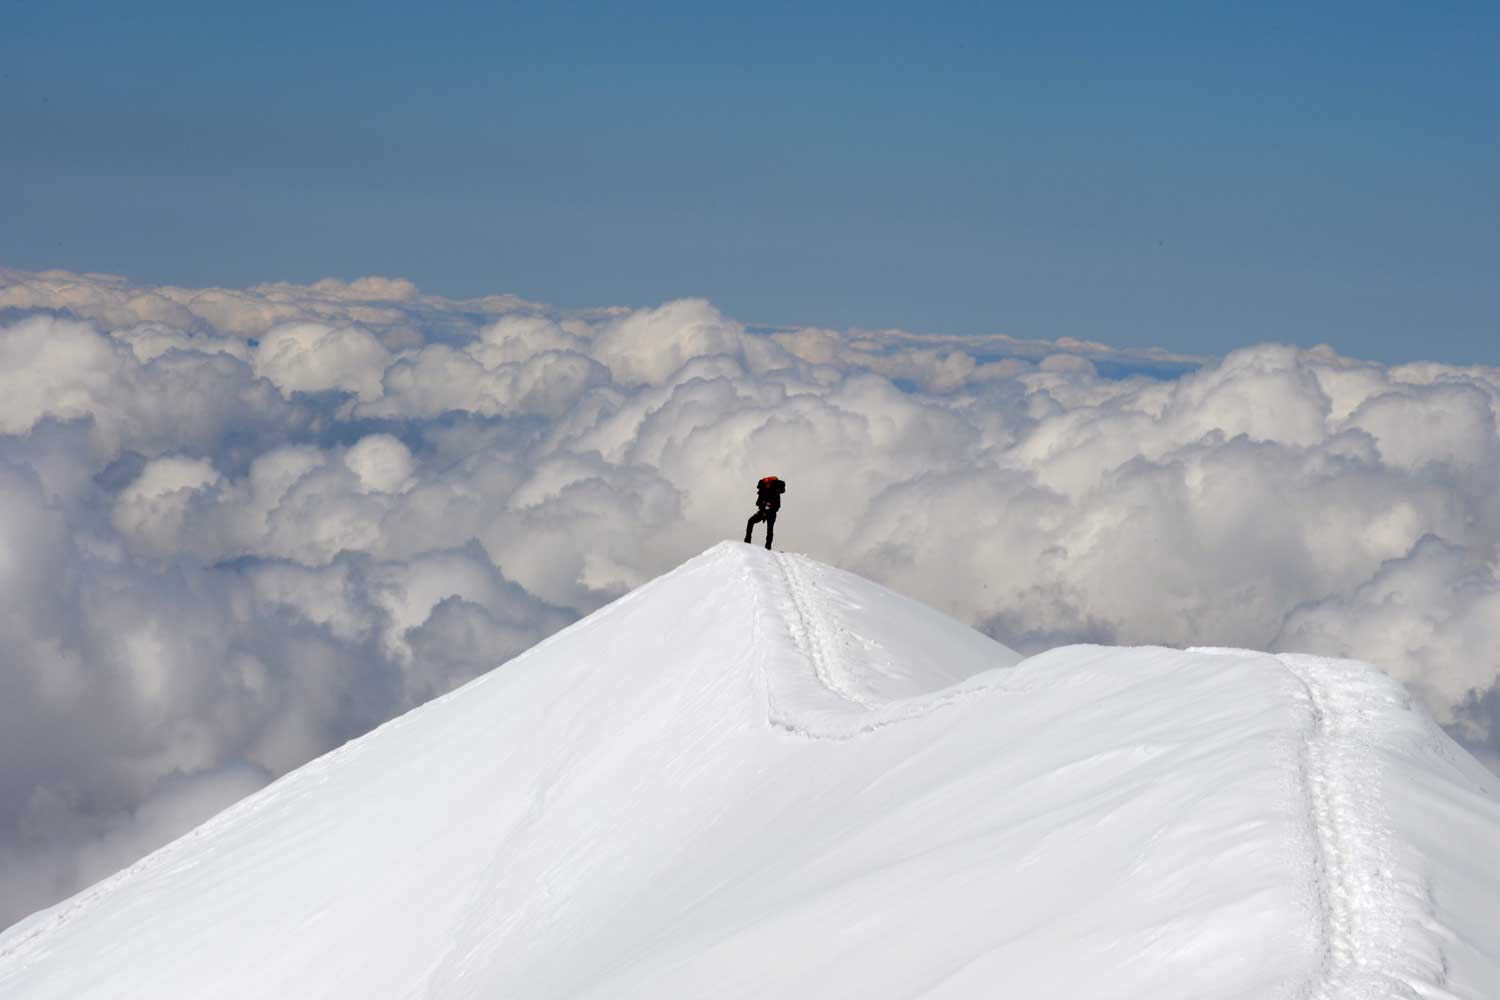 Climbing up the 'Voie royale' to the top of the Dome du Goûter in the French Alps.